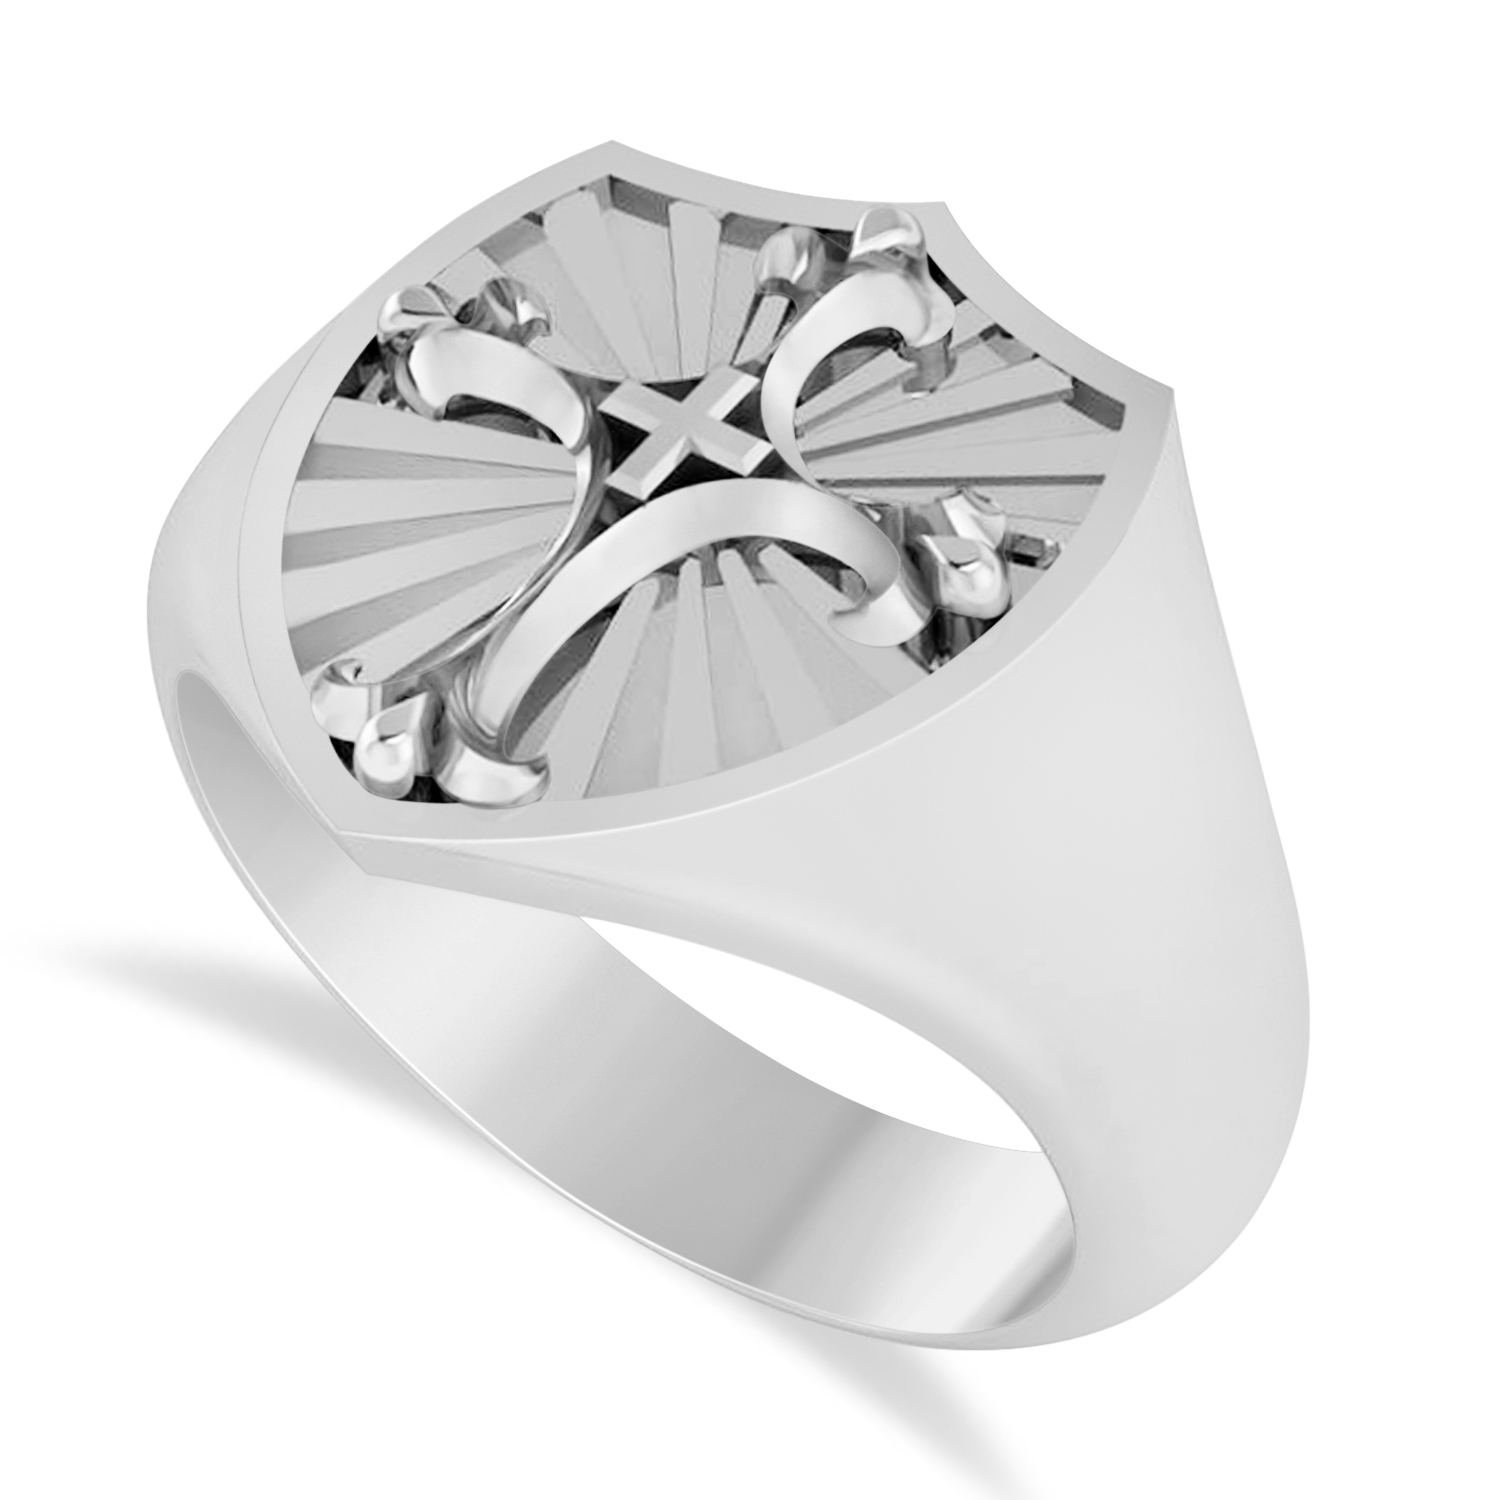 Men's Antique Style Cross Signet Ring 14k White Gold